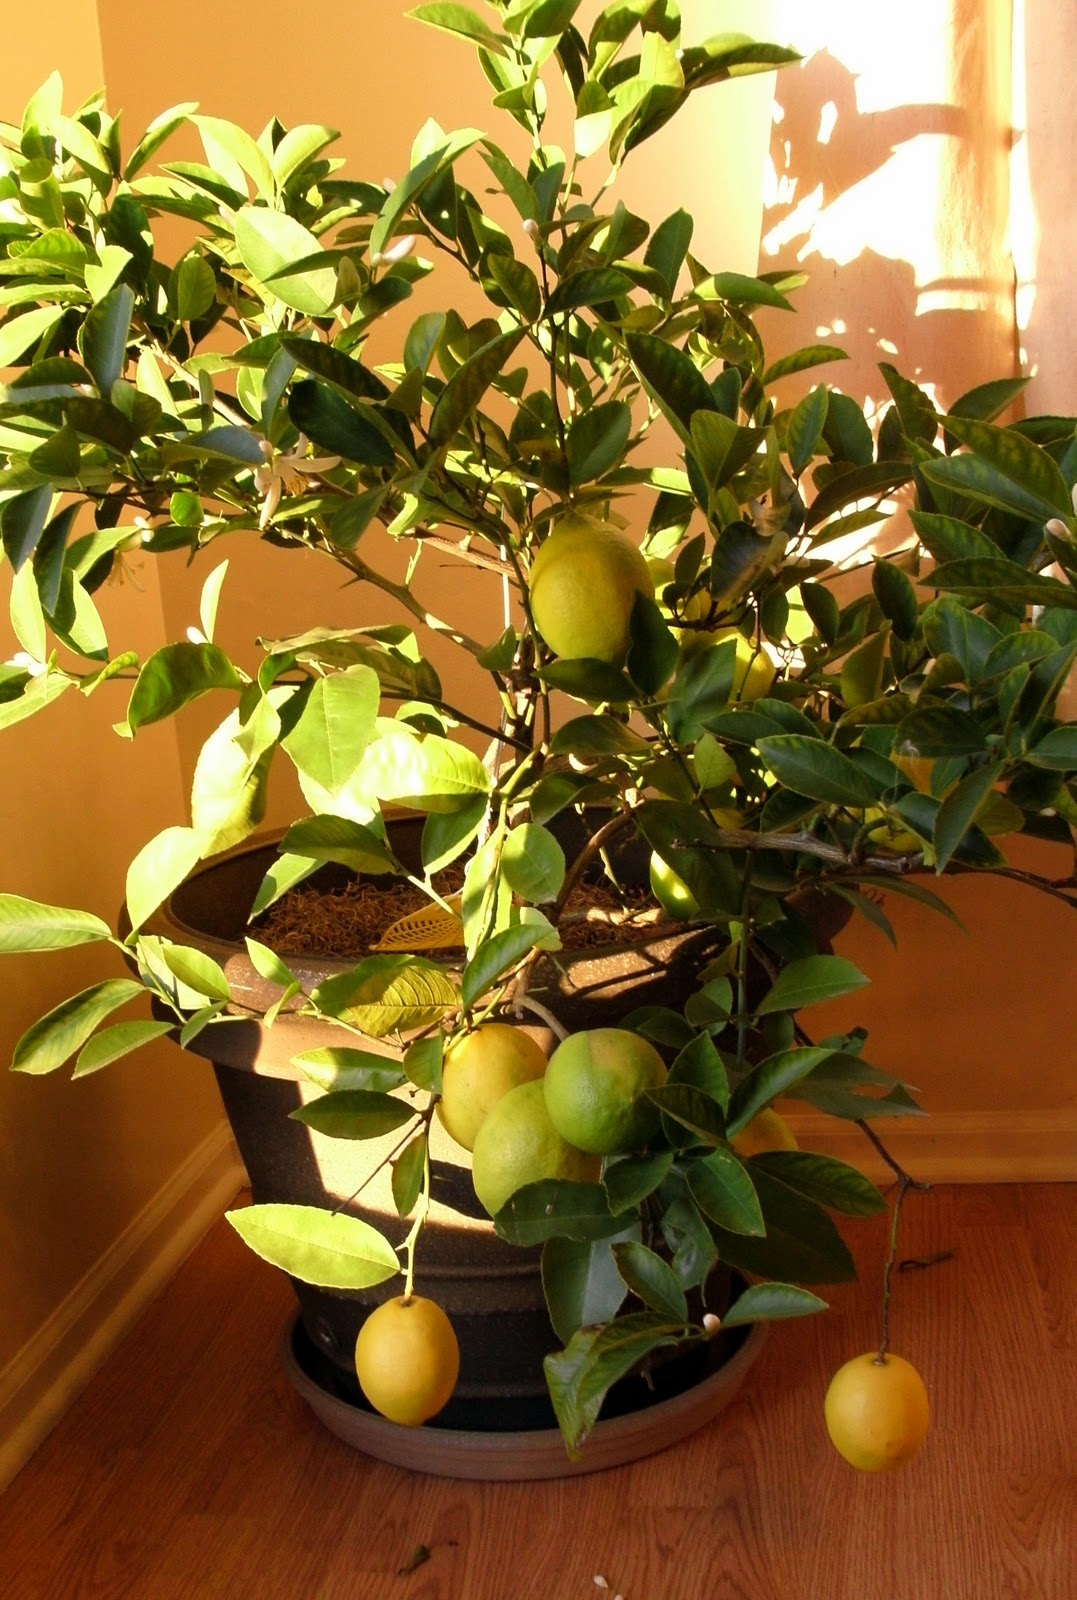 why yes those really are lemons growing on my lemon tree meyer lemons in fact and they taste sooo much better than the ones from the store